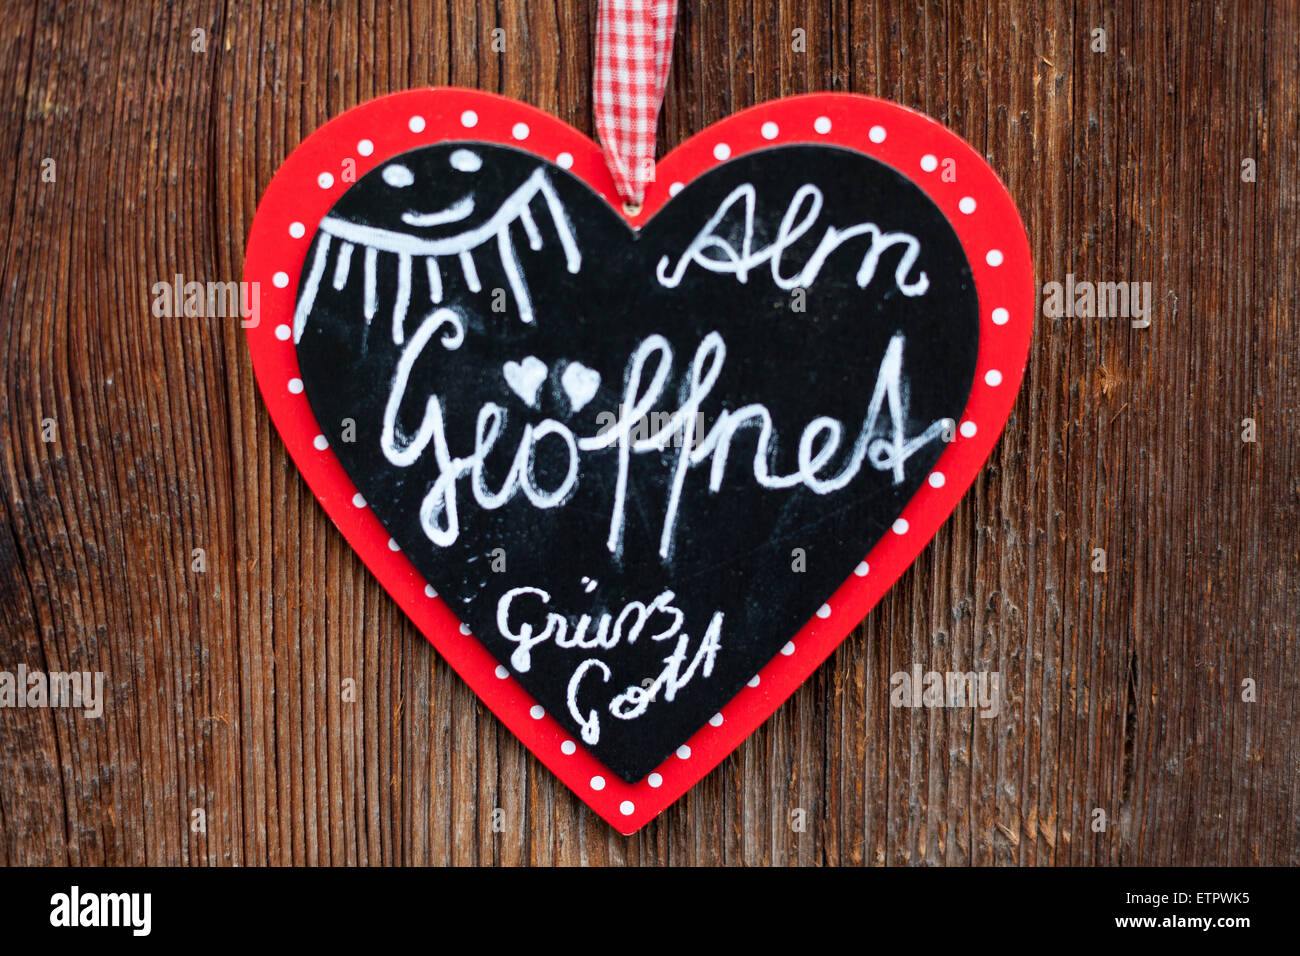 Labeled heart at the entrance of an alpine hut, Austria, Tyrol, Zillertal, Klausenalm - Stock Image